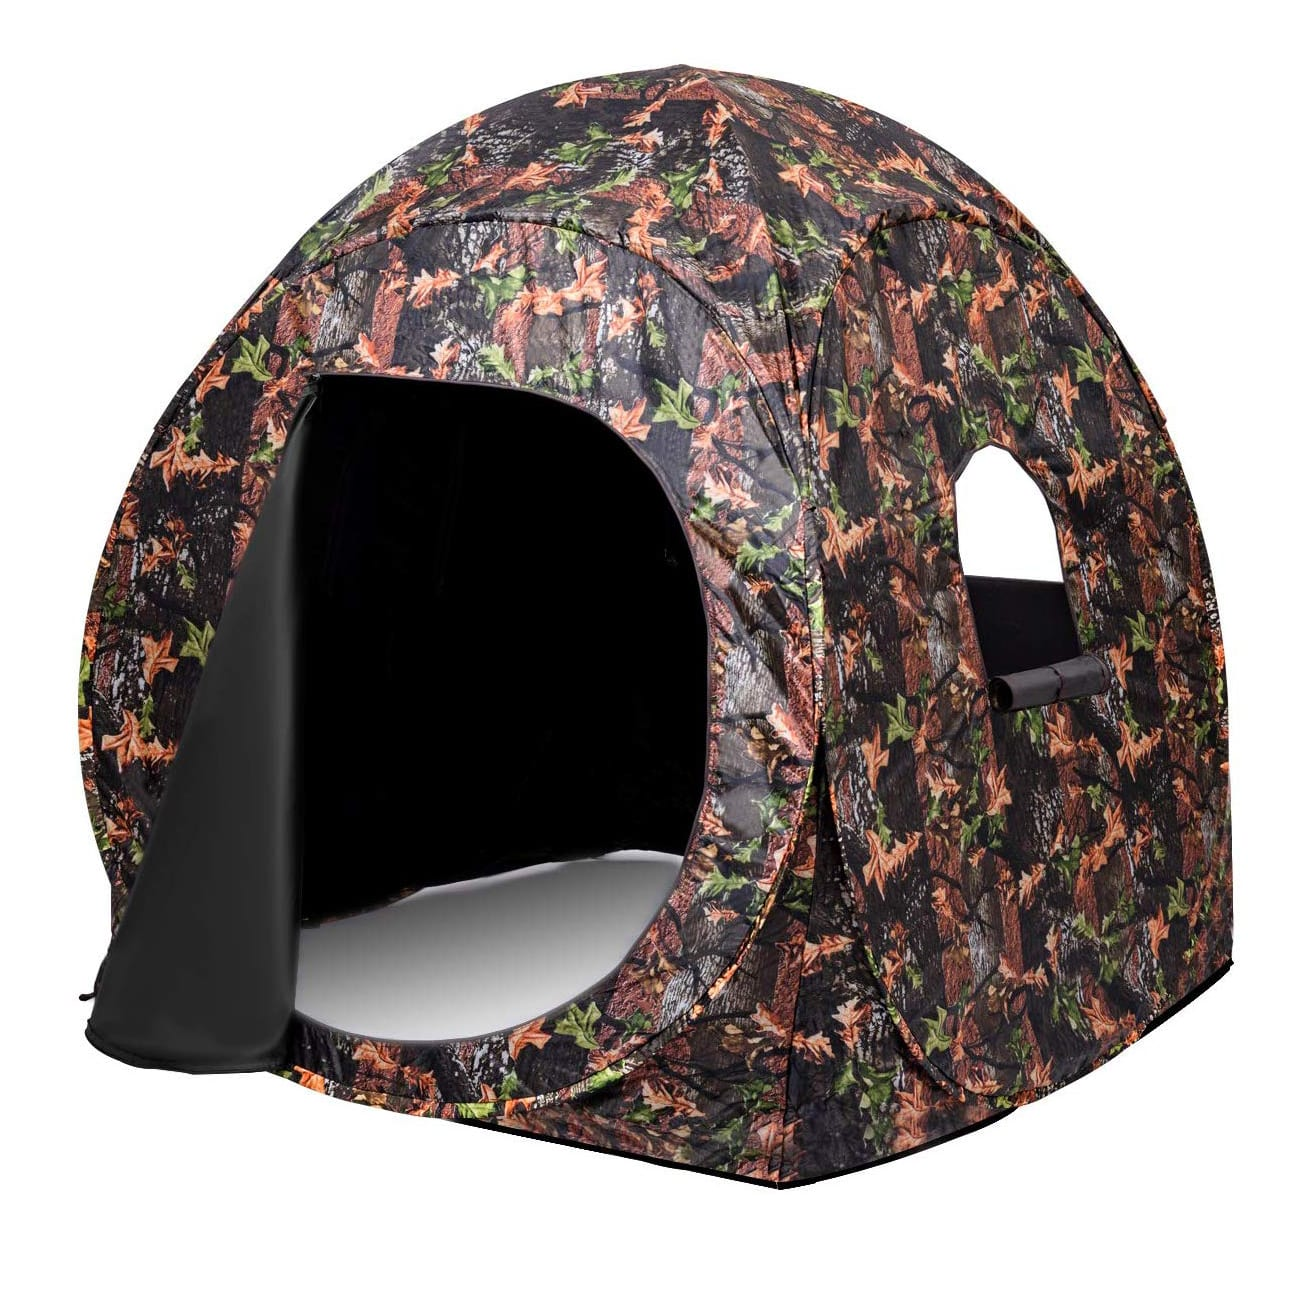 Tangkula Hunting Tent Portable Hunting Blind- Durable and Comfortable